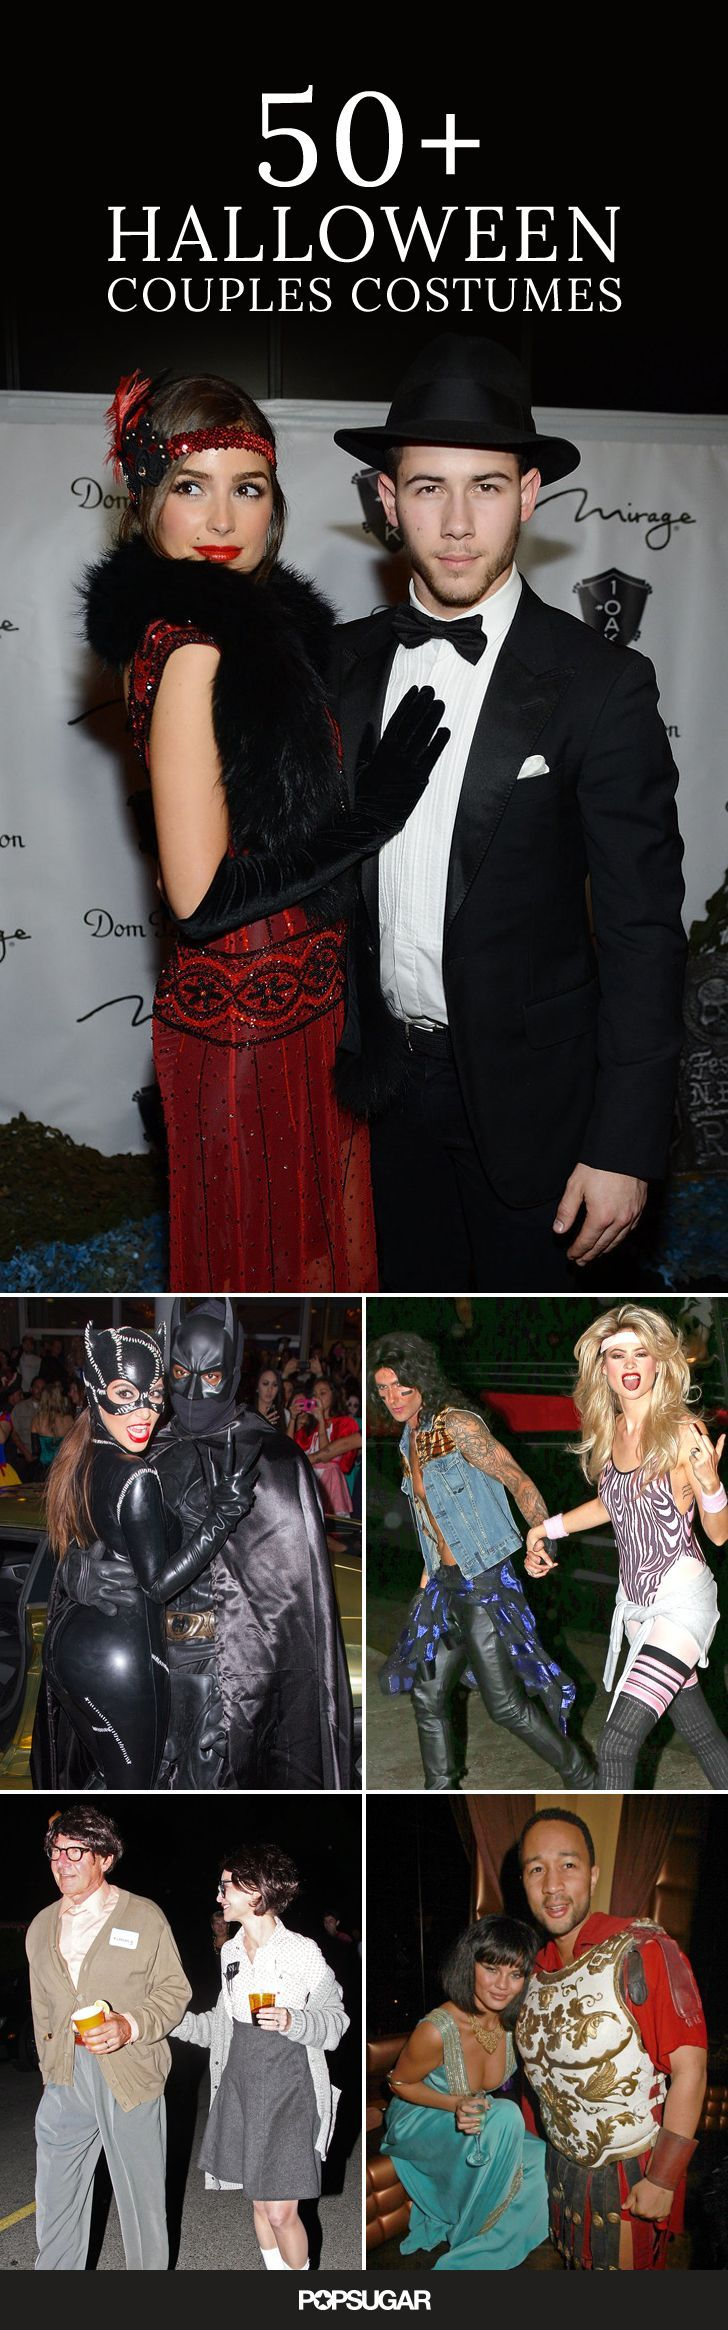 There have been a lot of impressive #Halloween #costumes over the years, but only a handful of celebrity couples make it out in coordinated looks. Get inspiration and ideas with a look back at some of the best celebrity couples costumes!